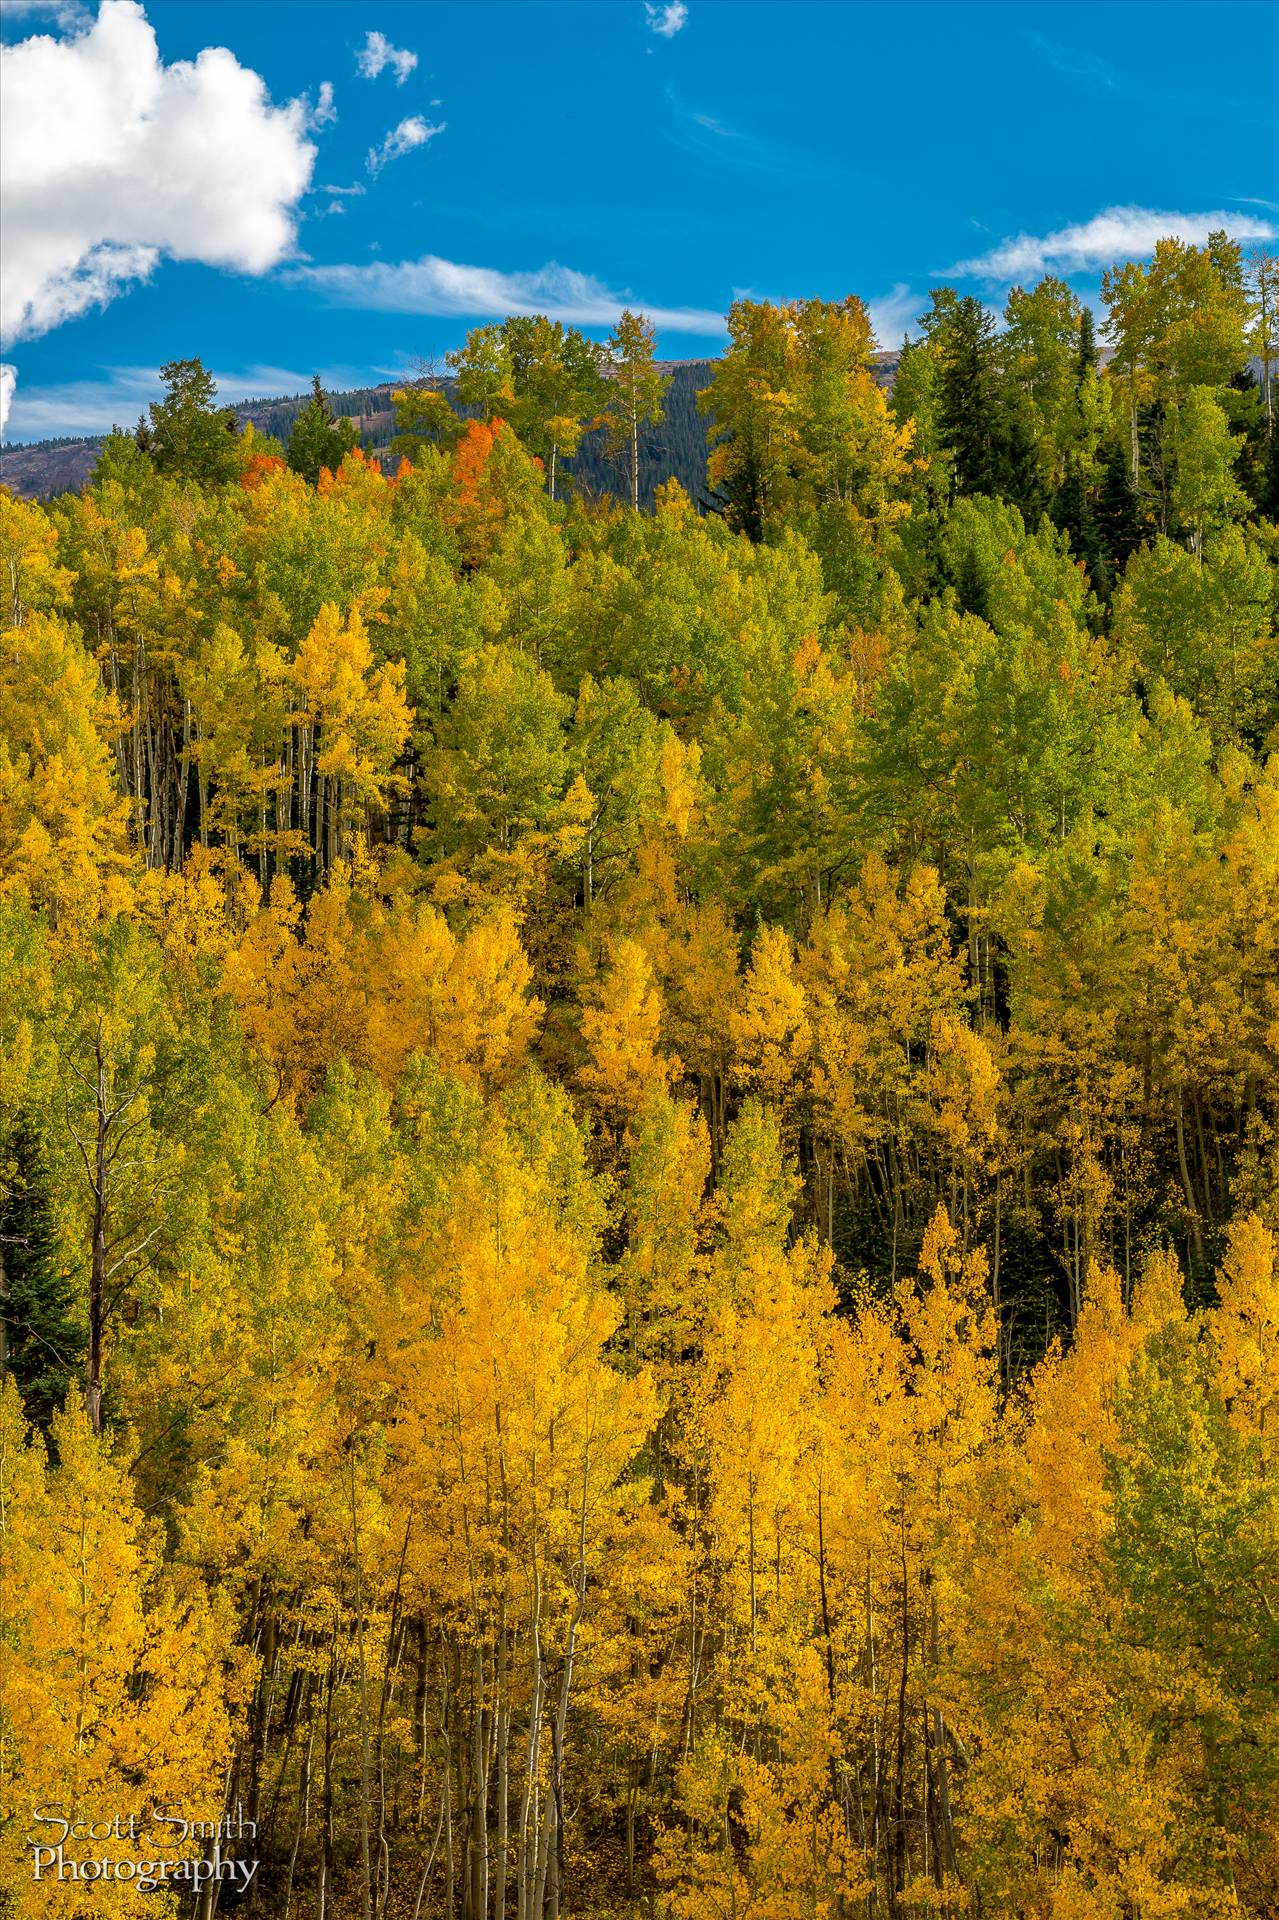 Snowmass Wilderness Area Fall Colors - Fall colors in Colorado, just outside of Snowmass Village by D Scott Smith